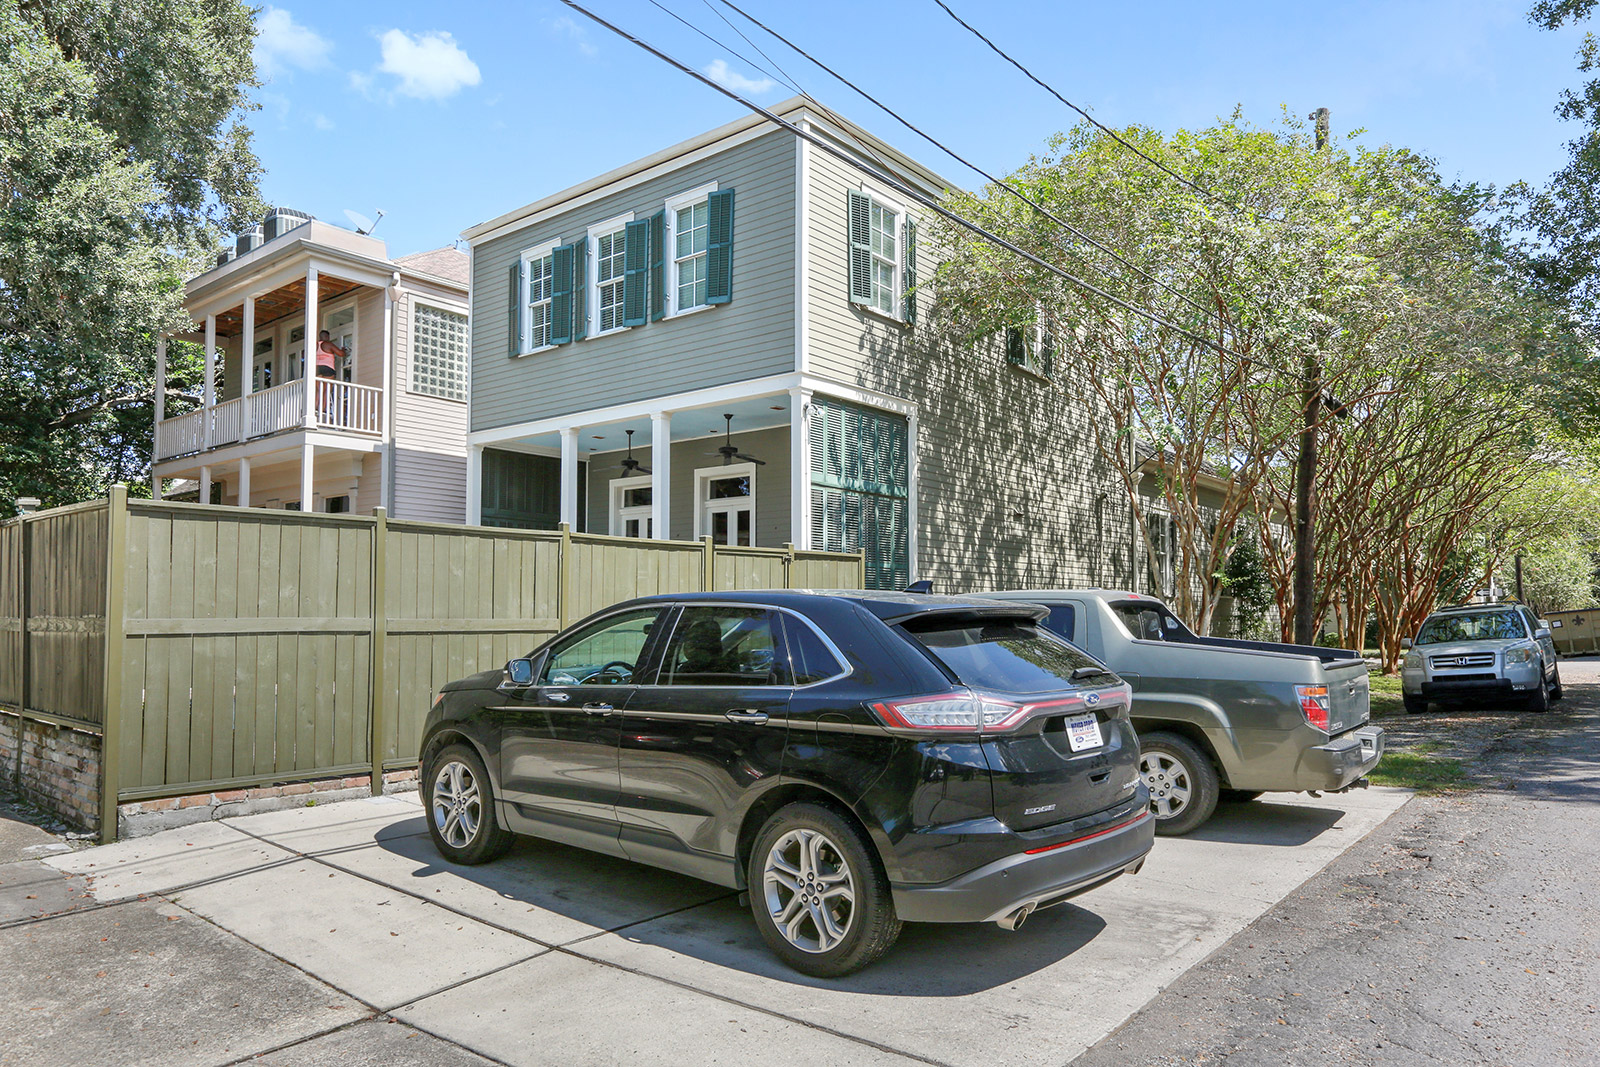 Uptown, House, 3 beds, 2.5 baths, $10500 per month New Orleans Rental - devie image_21